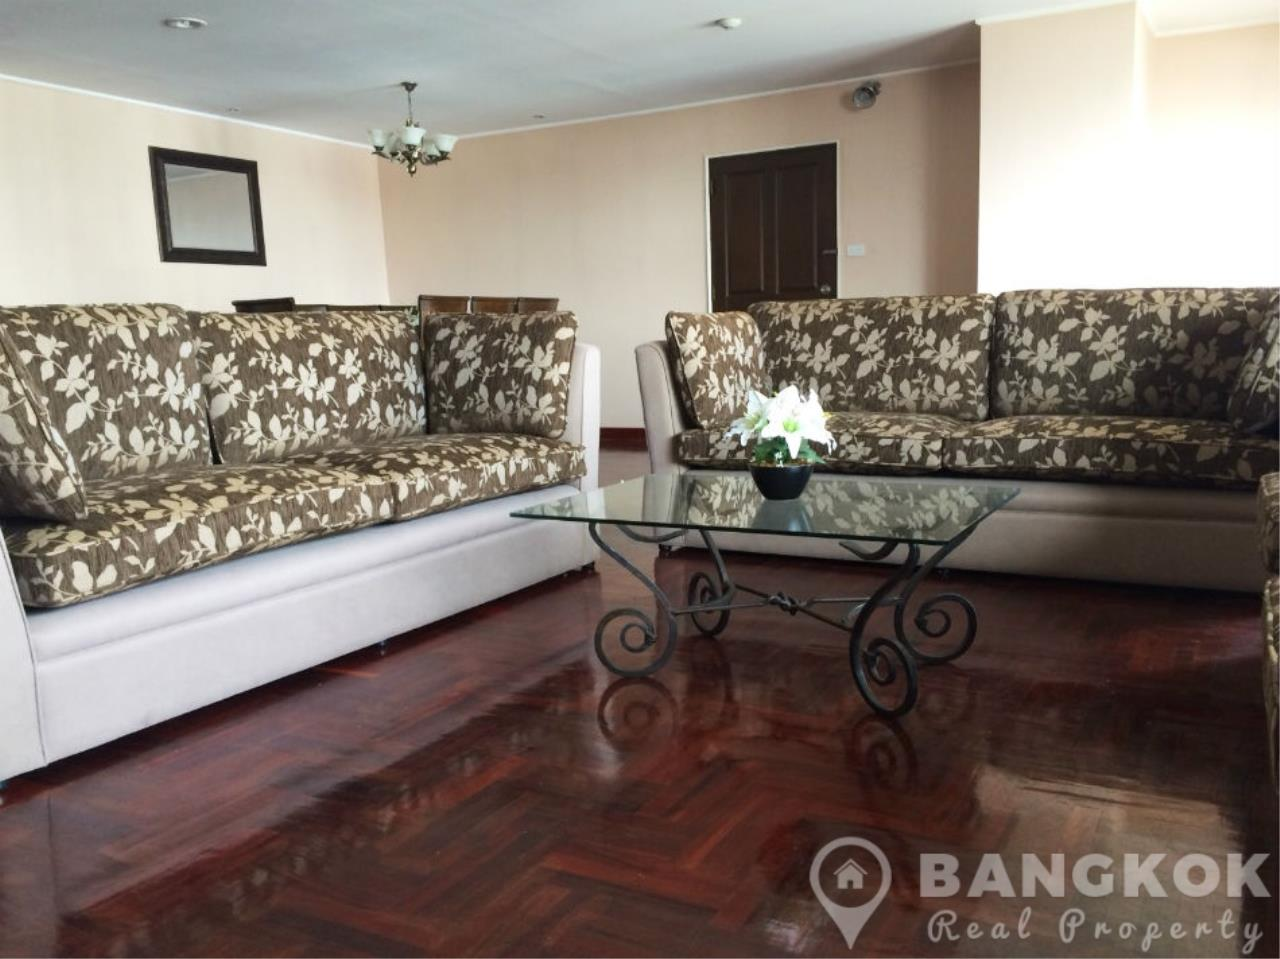 Bangkok Real Property Agency's Casa Viva | Very Spacious 3 Bed 3 Bath Condo in Ekkamai 2